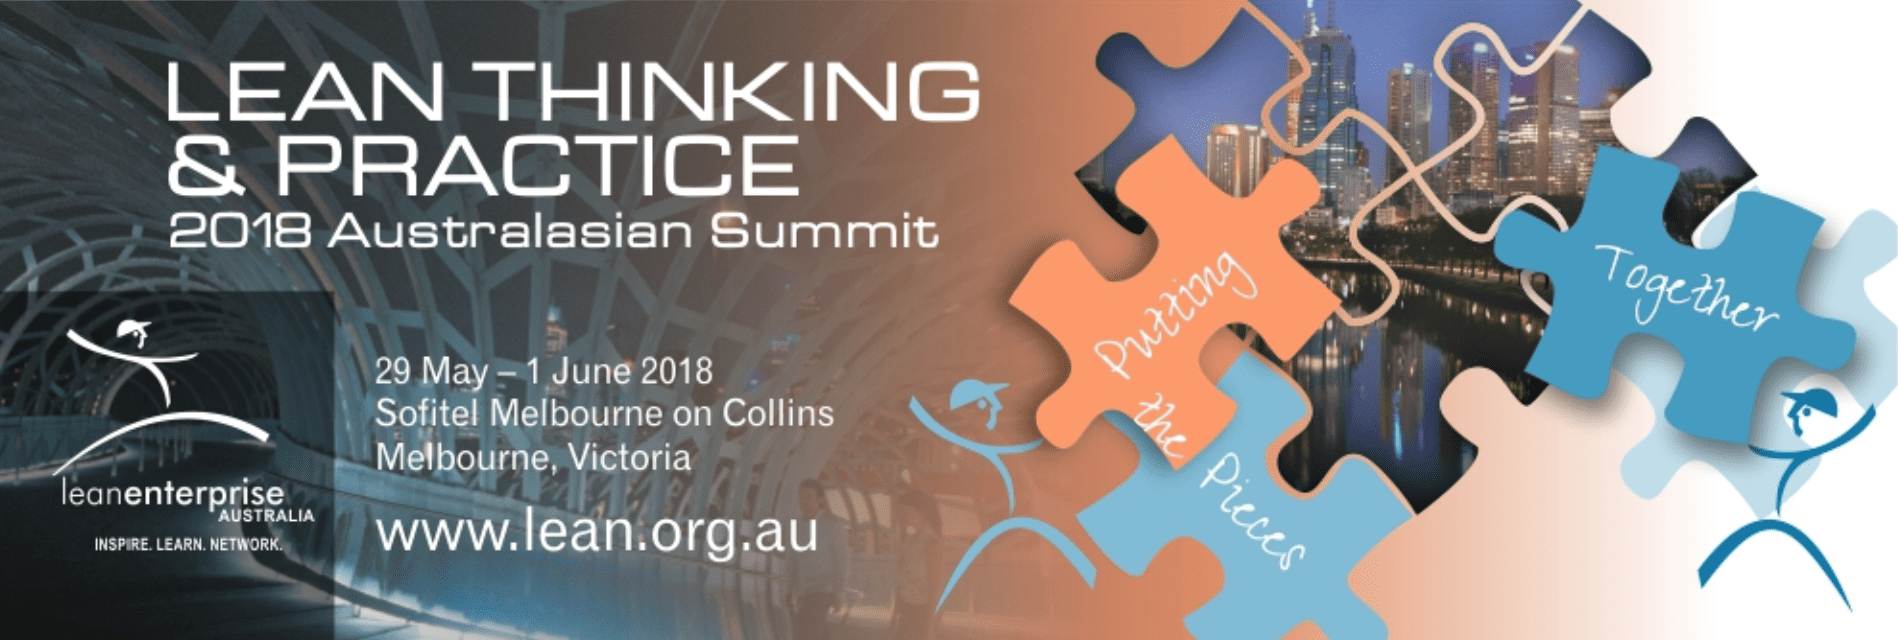 Lean Summit Australia 2018